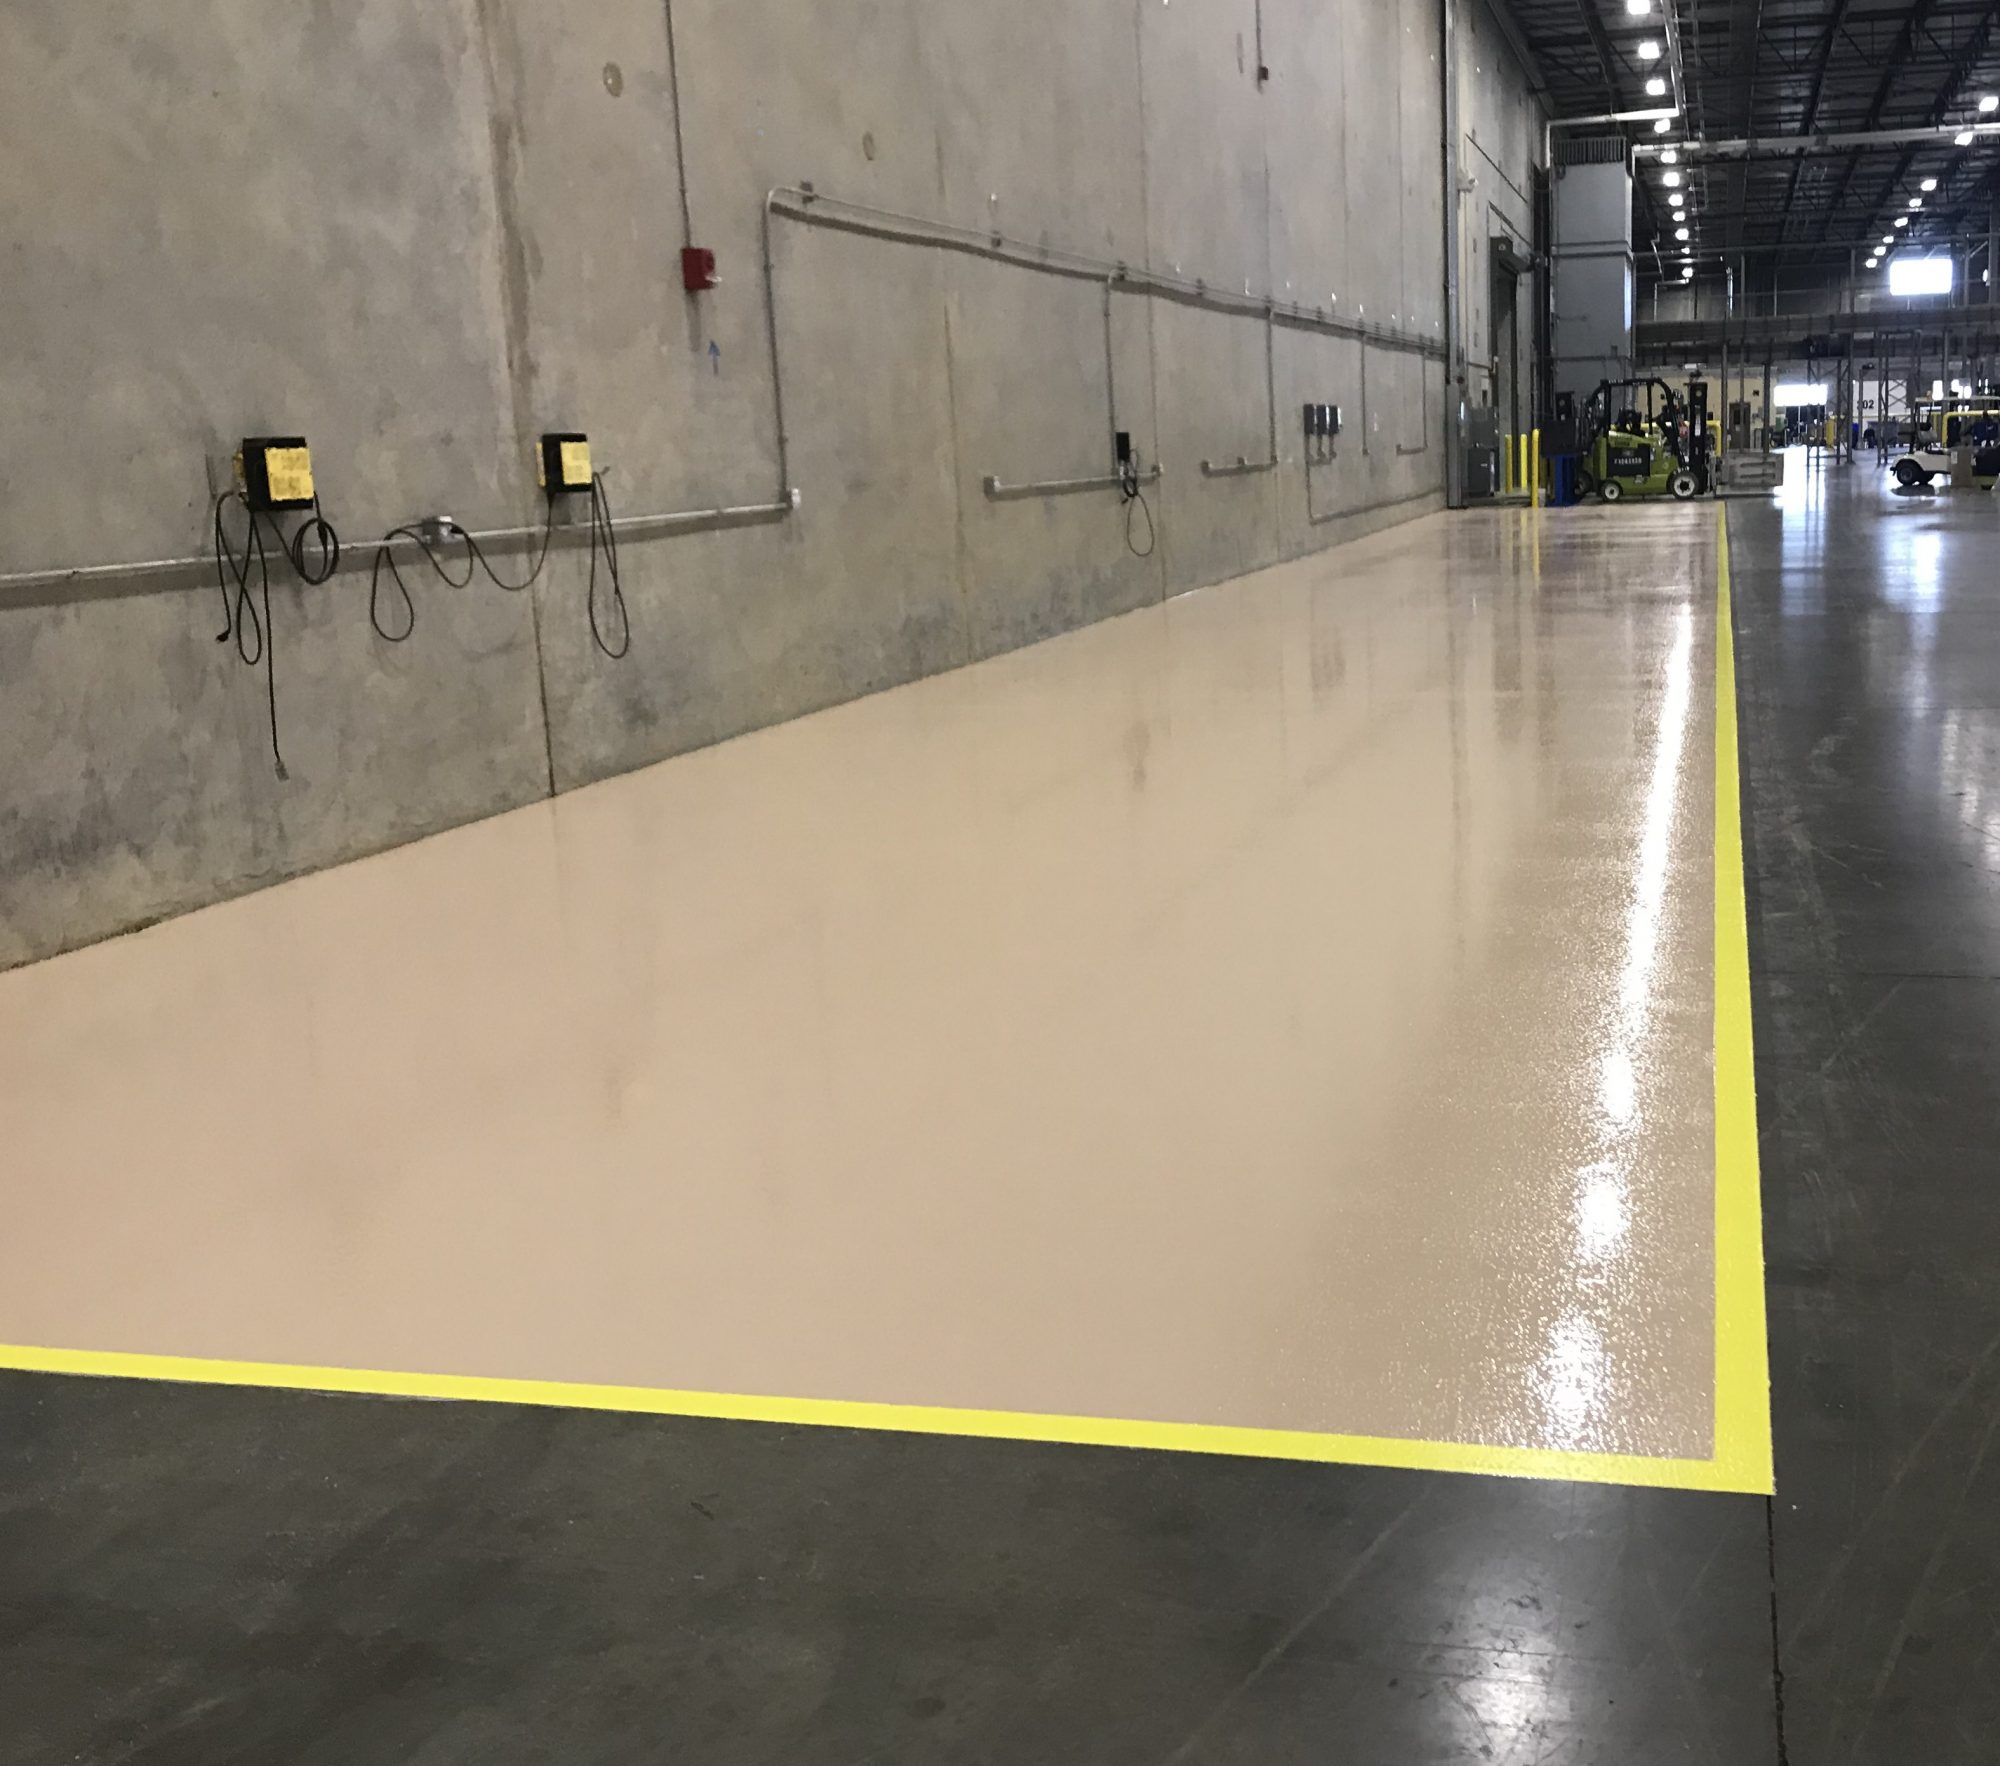 epoxy line striping, battery charging area epoxy floor coating, safety striping